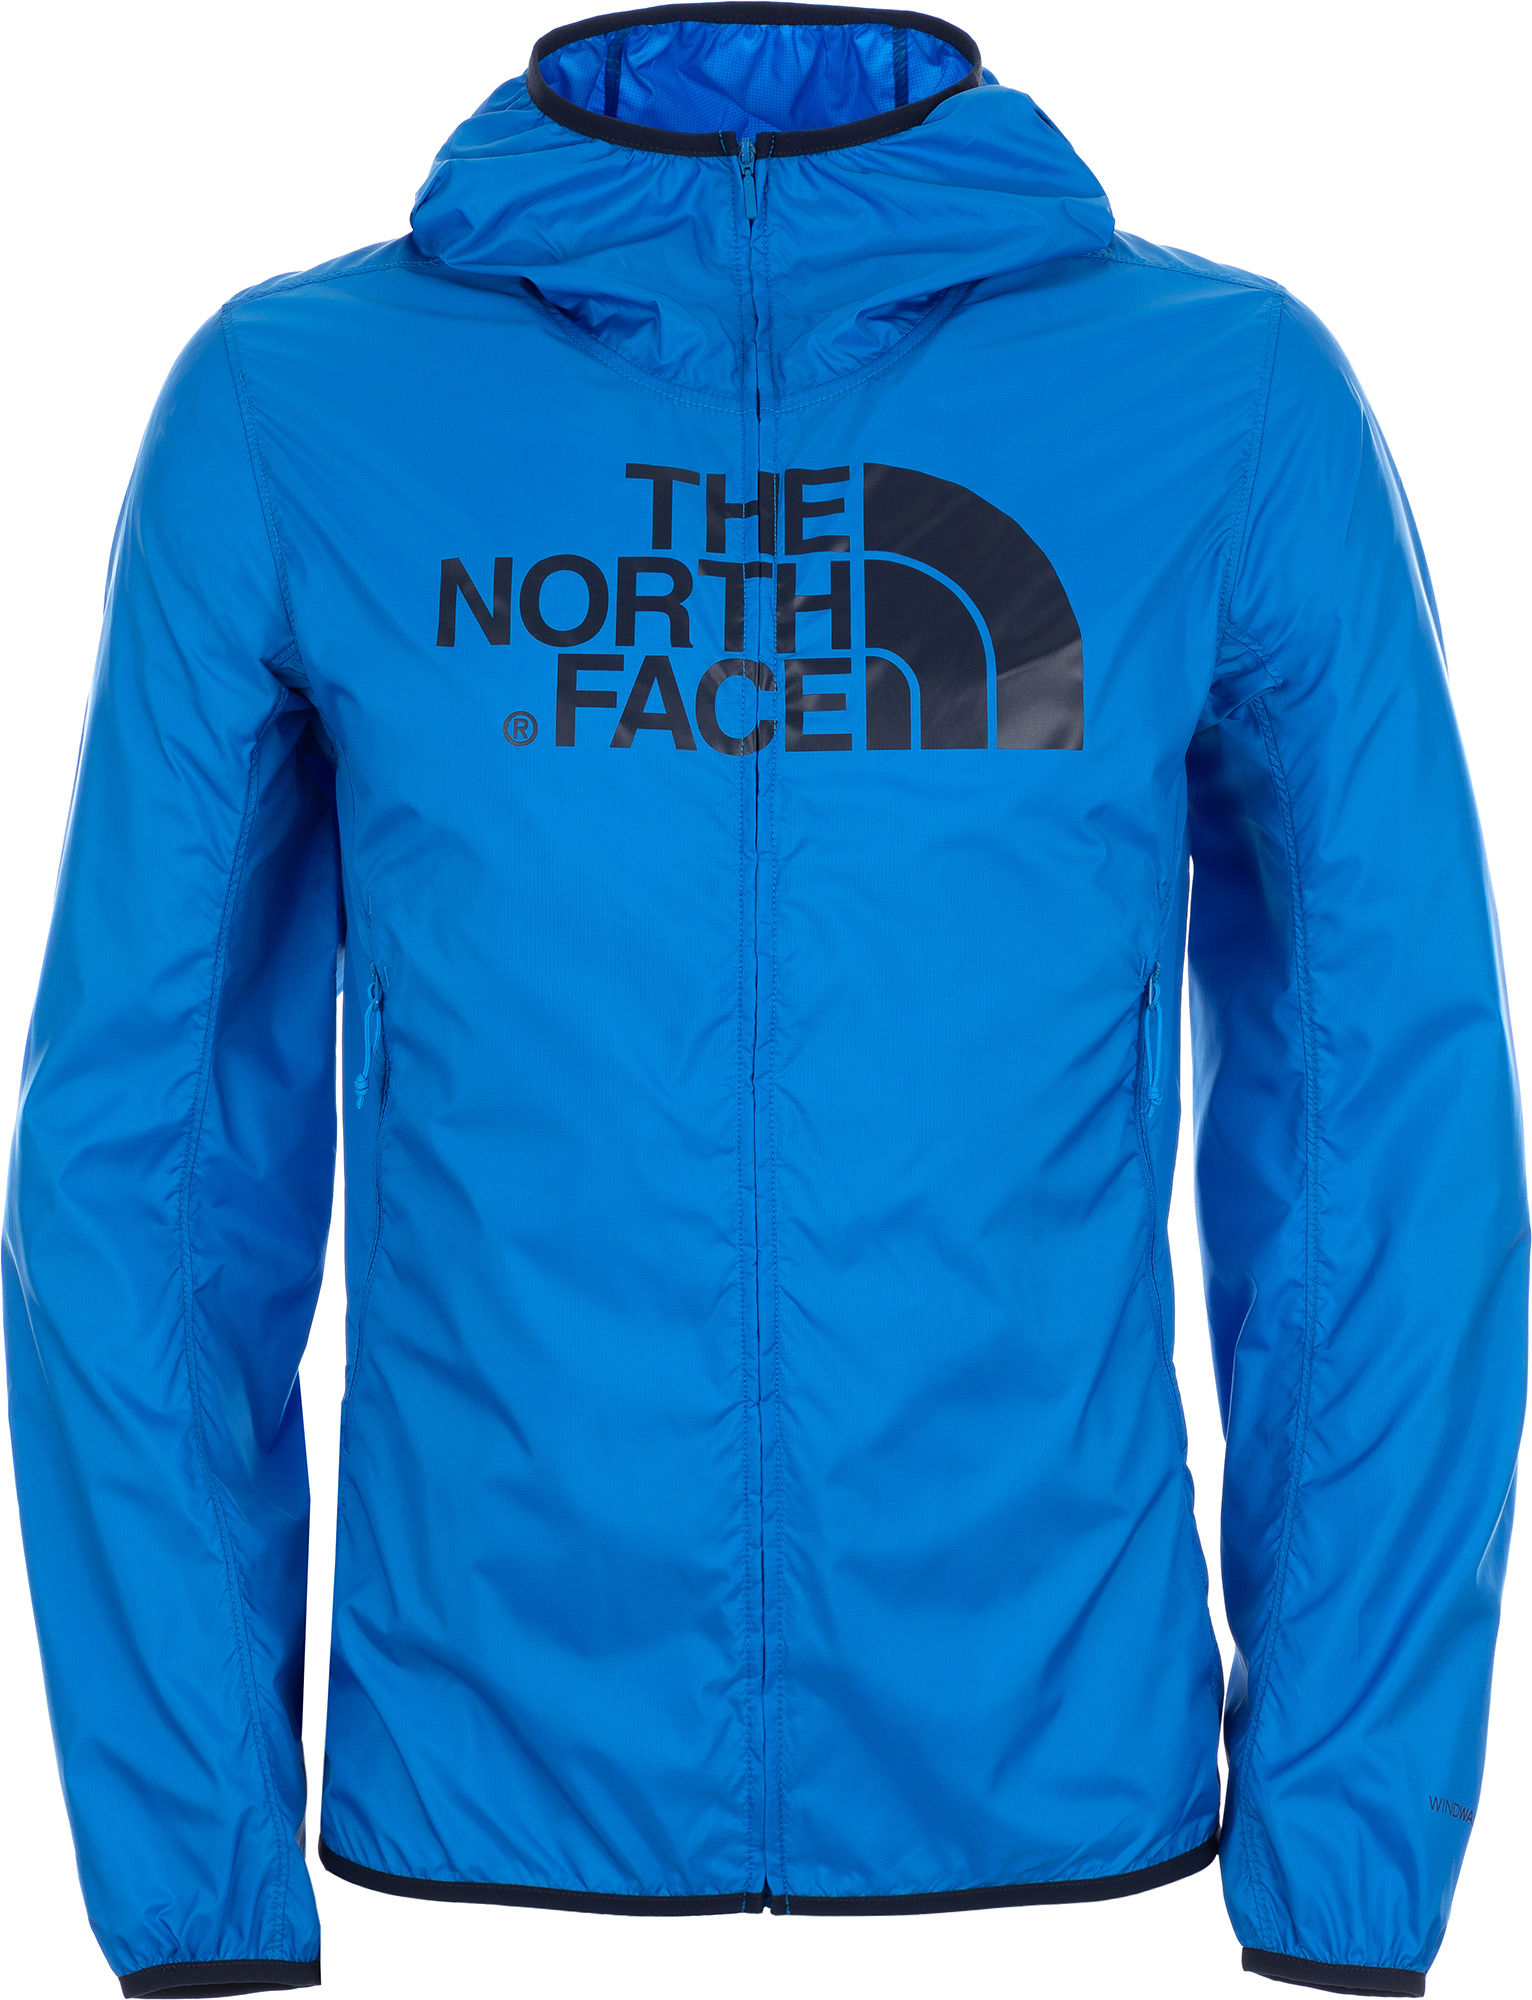 The North Face Ветровка мужская The North Face Drew Peak WindWall, размер 46 drew magary the end specialist